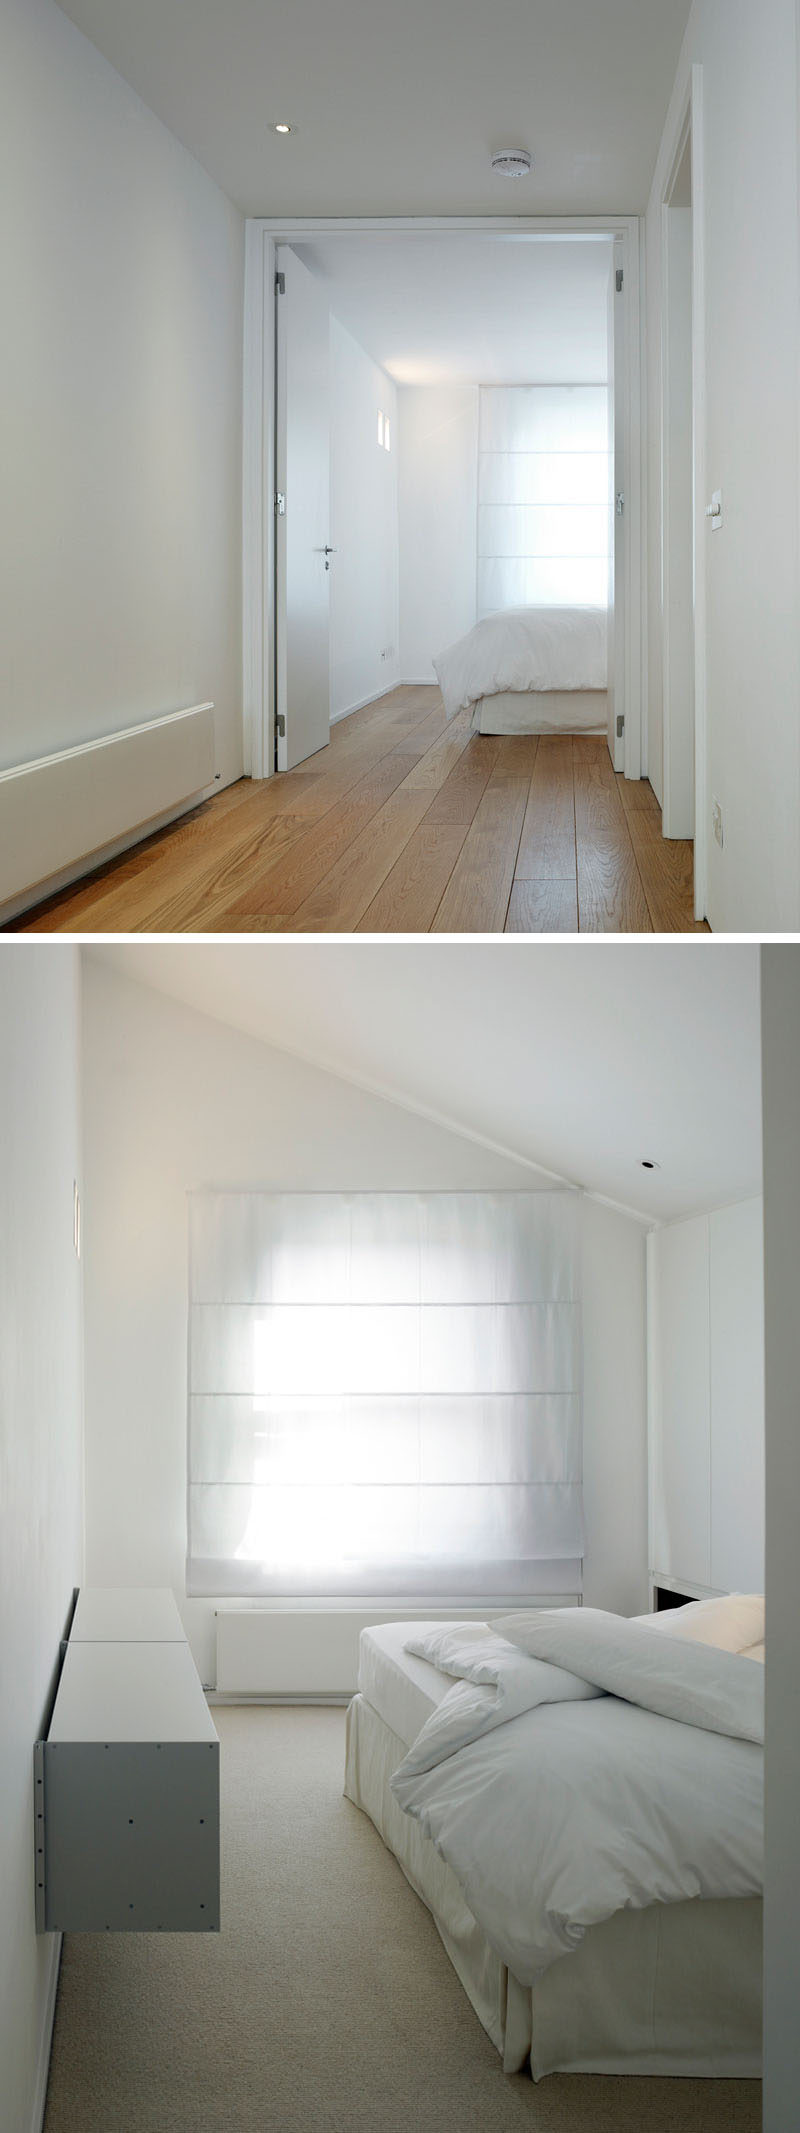 At the top of the stairs in this renovated house, there's a white themed bedroom. A simple window shade creates privacy but also ties in with the overall white appearance of the room.